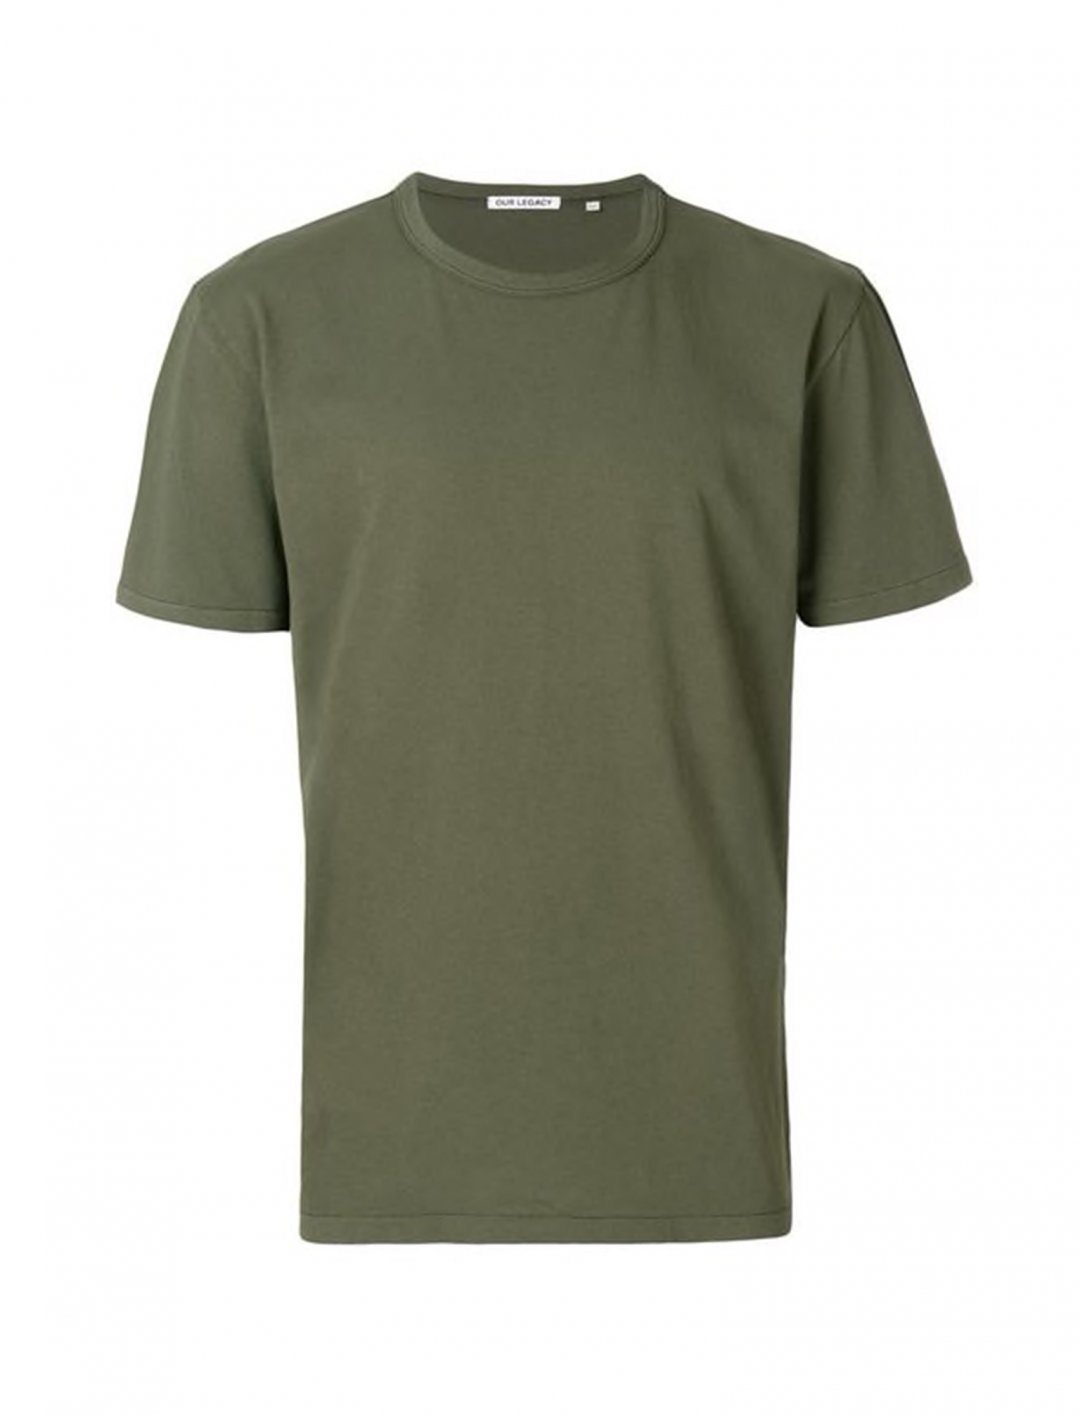 "G-Eazy's Classic Khaki T-Shirt {""id"":5,""product_section_id"":1,""name"":""Clothing"",""order"":5} Our Legacy"